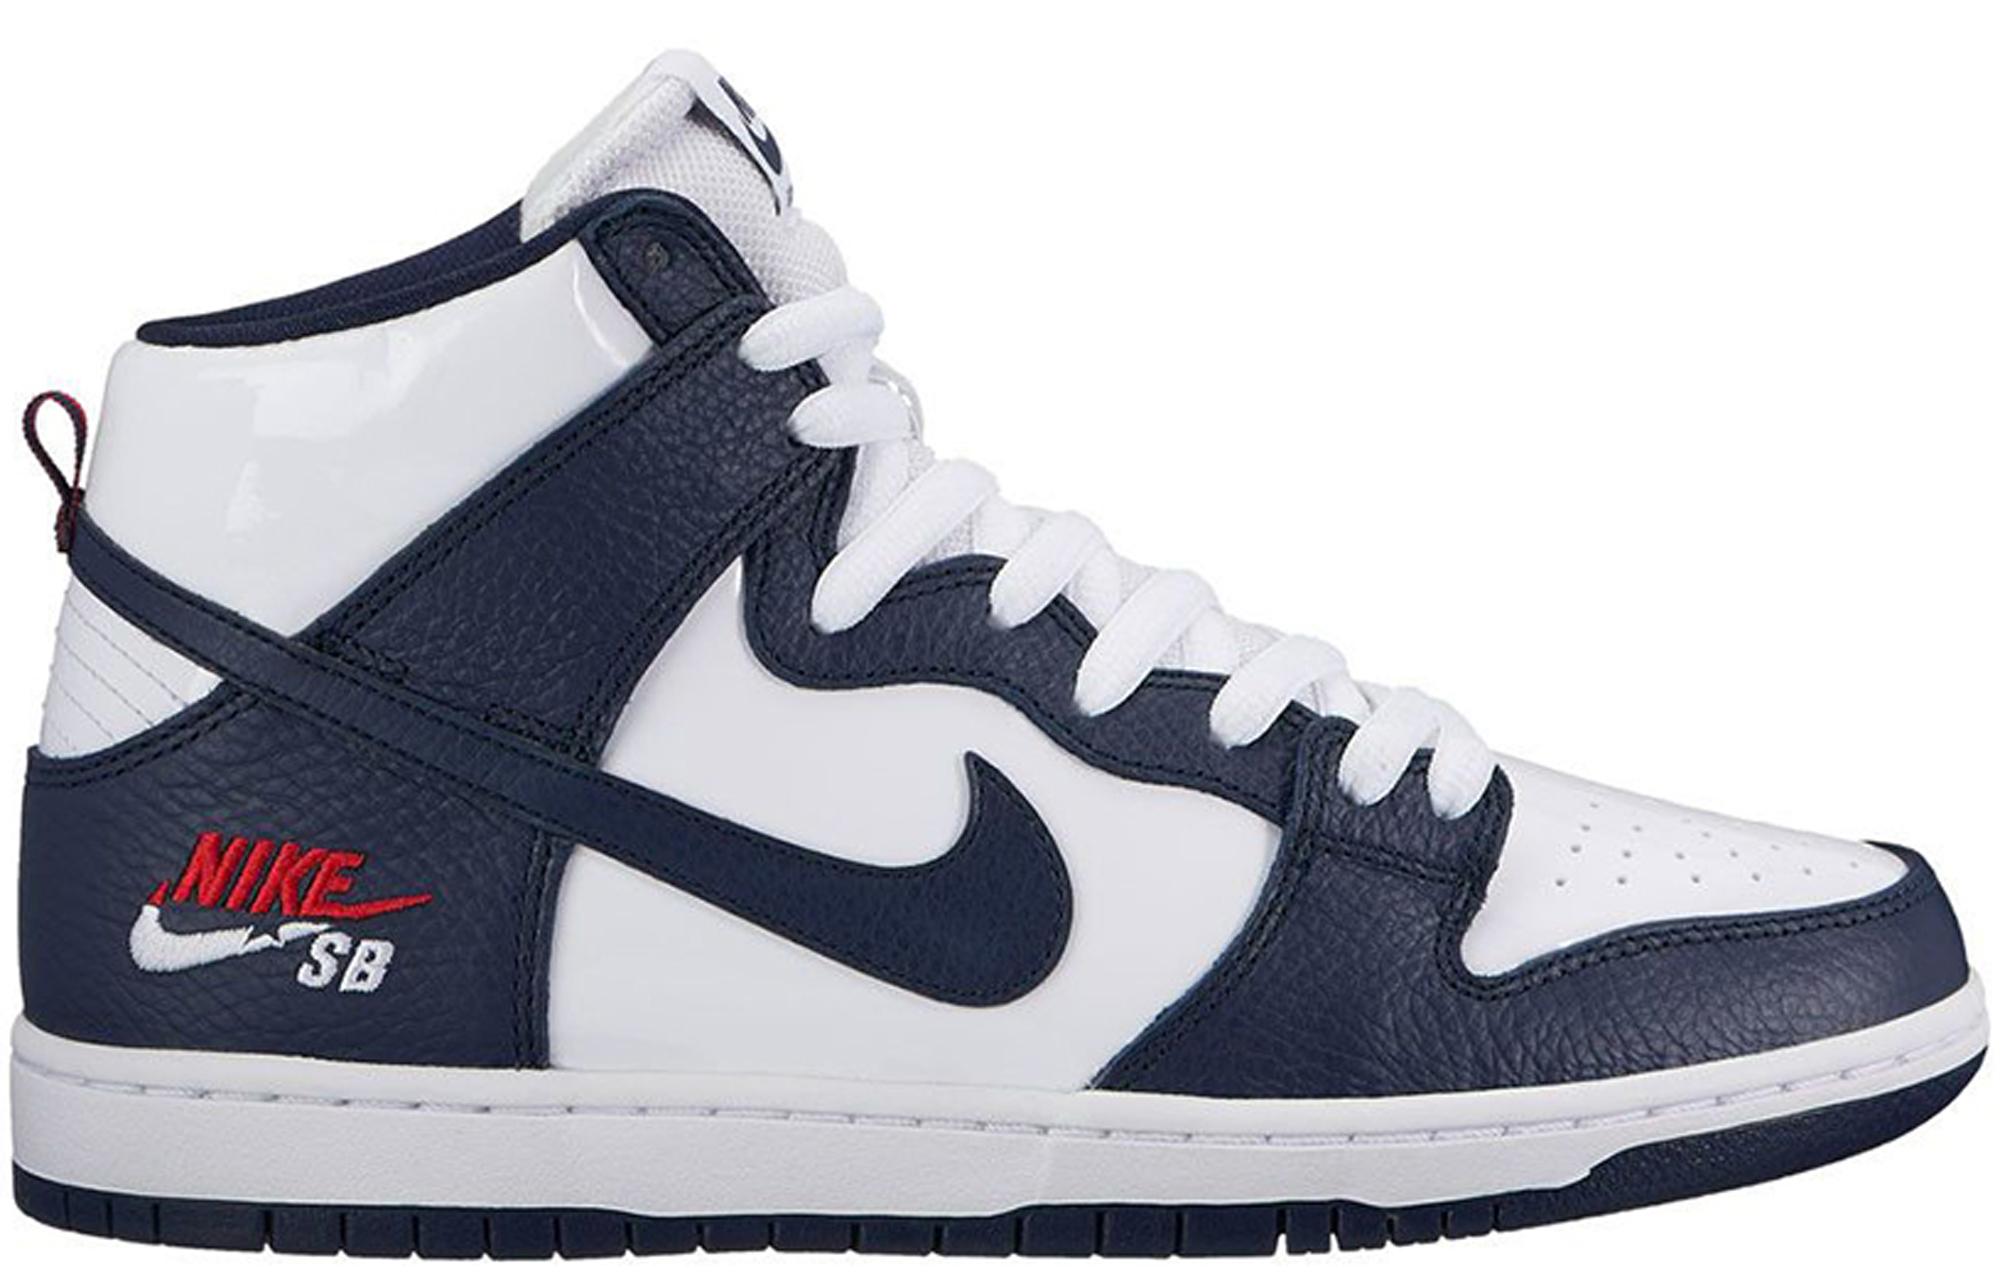 Nike SB Dunk High Future Court Obsidian